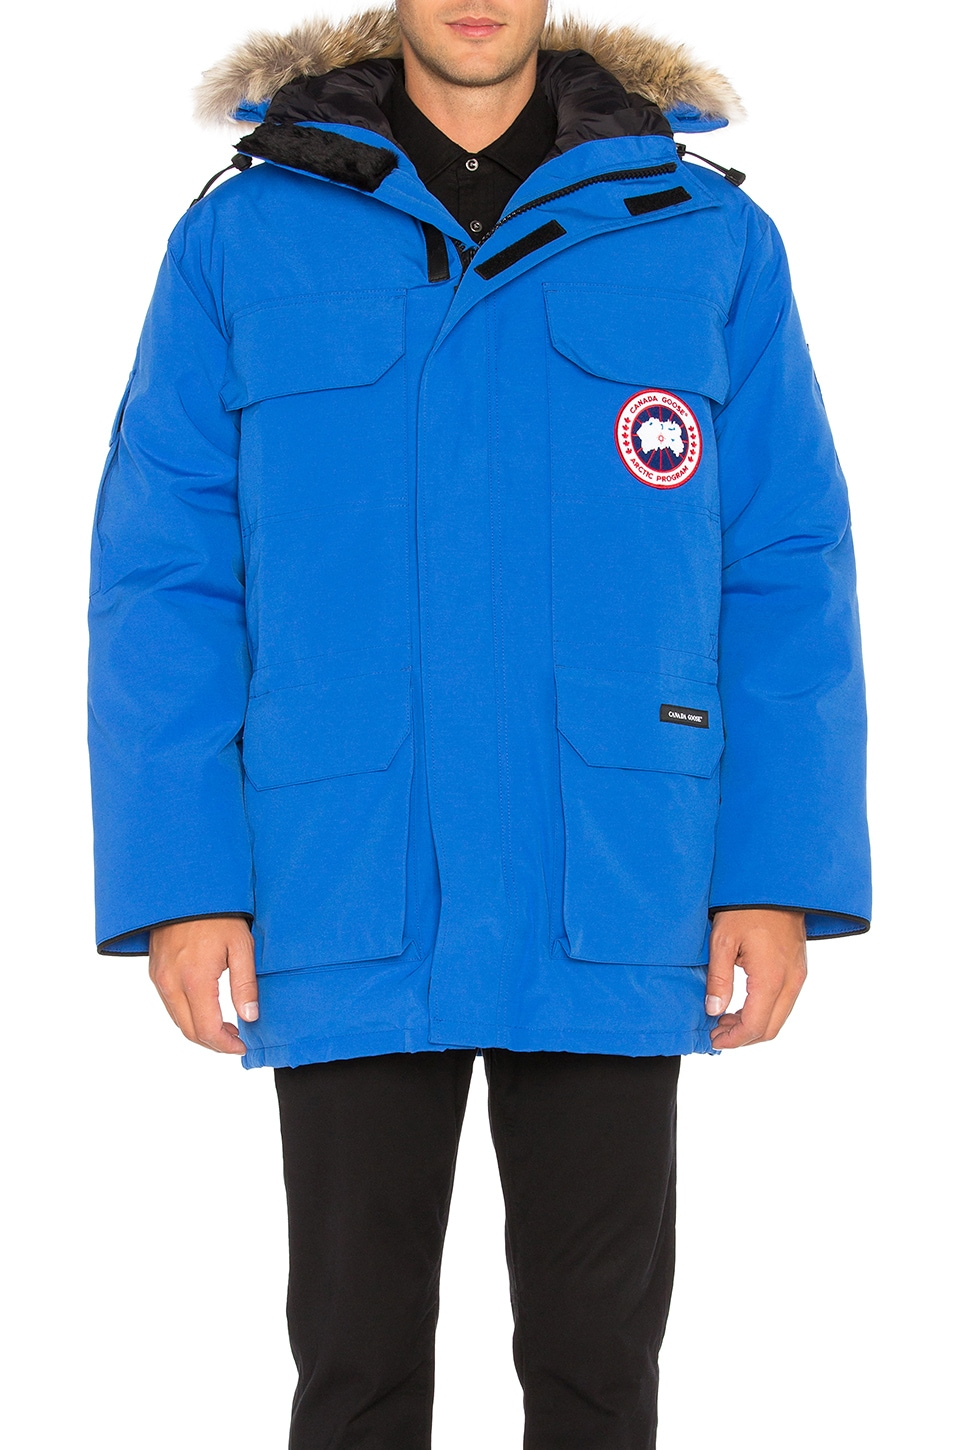 Polar Bears International Expedition Coyote Fur Trim Parka by Canada Goose